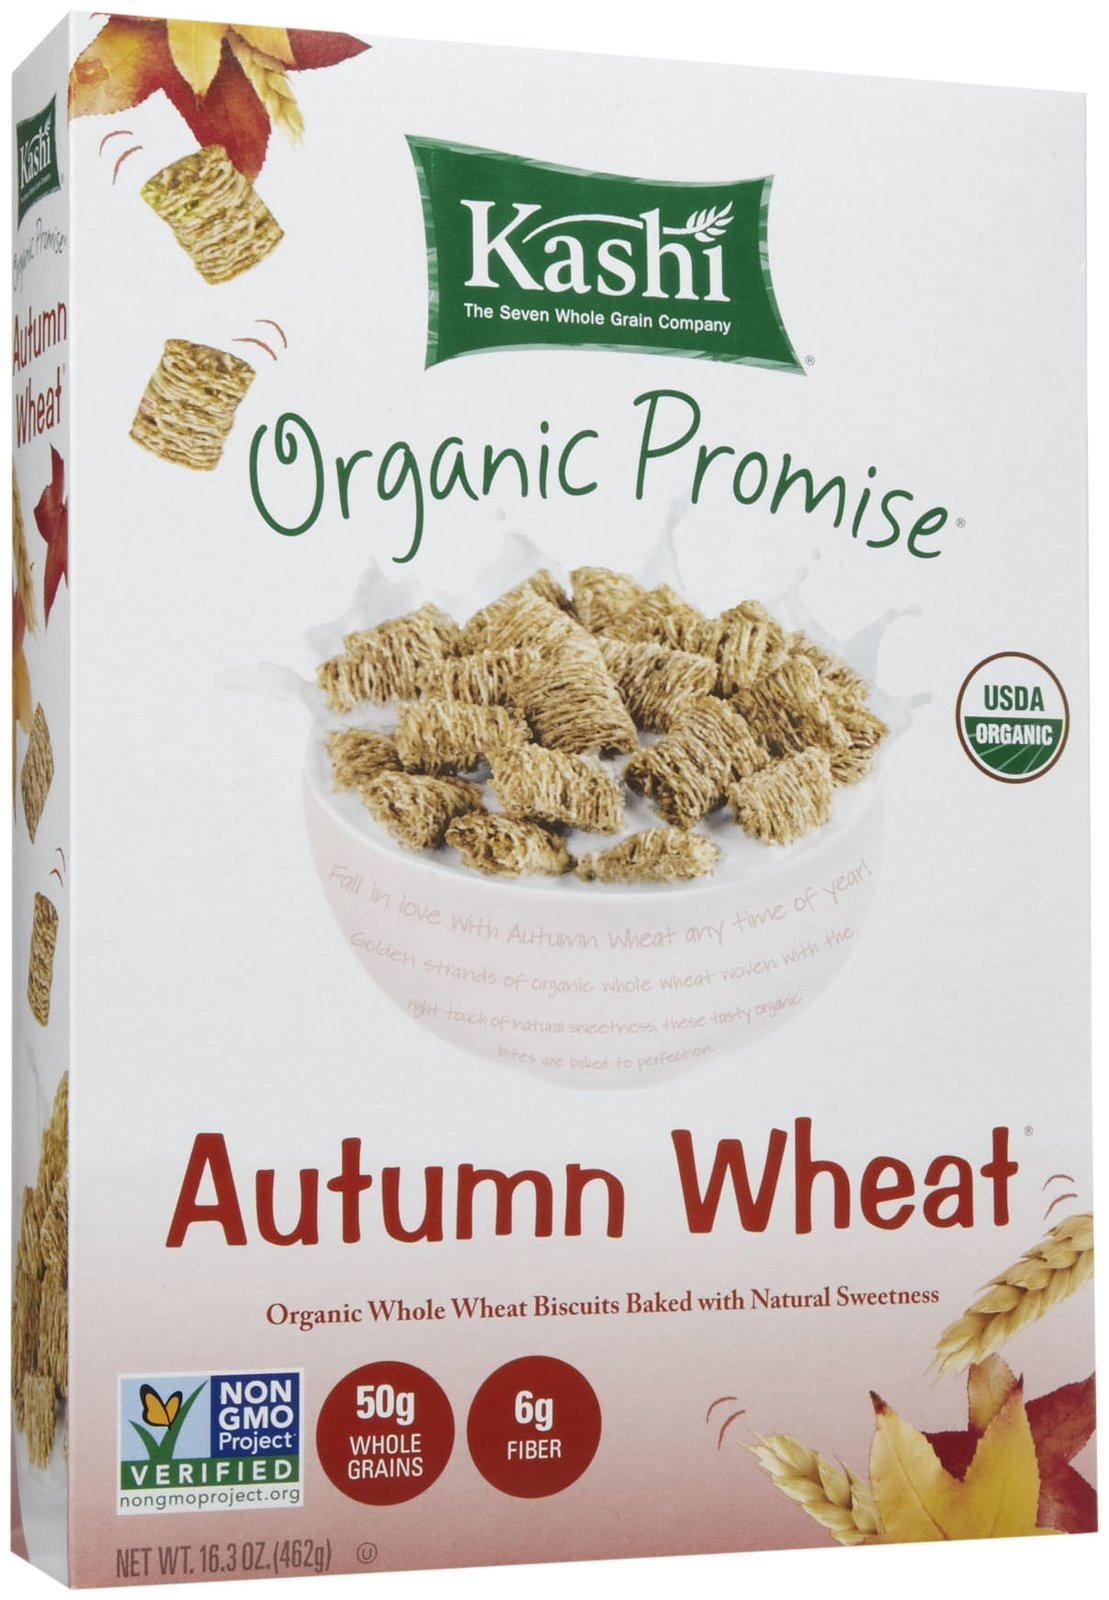 Kashi BG14725 Kashi Autumn Wheat Cereal - 12x16.3OZ